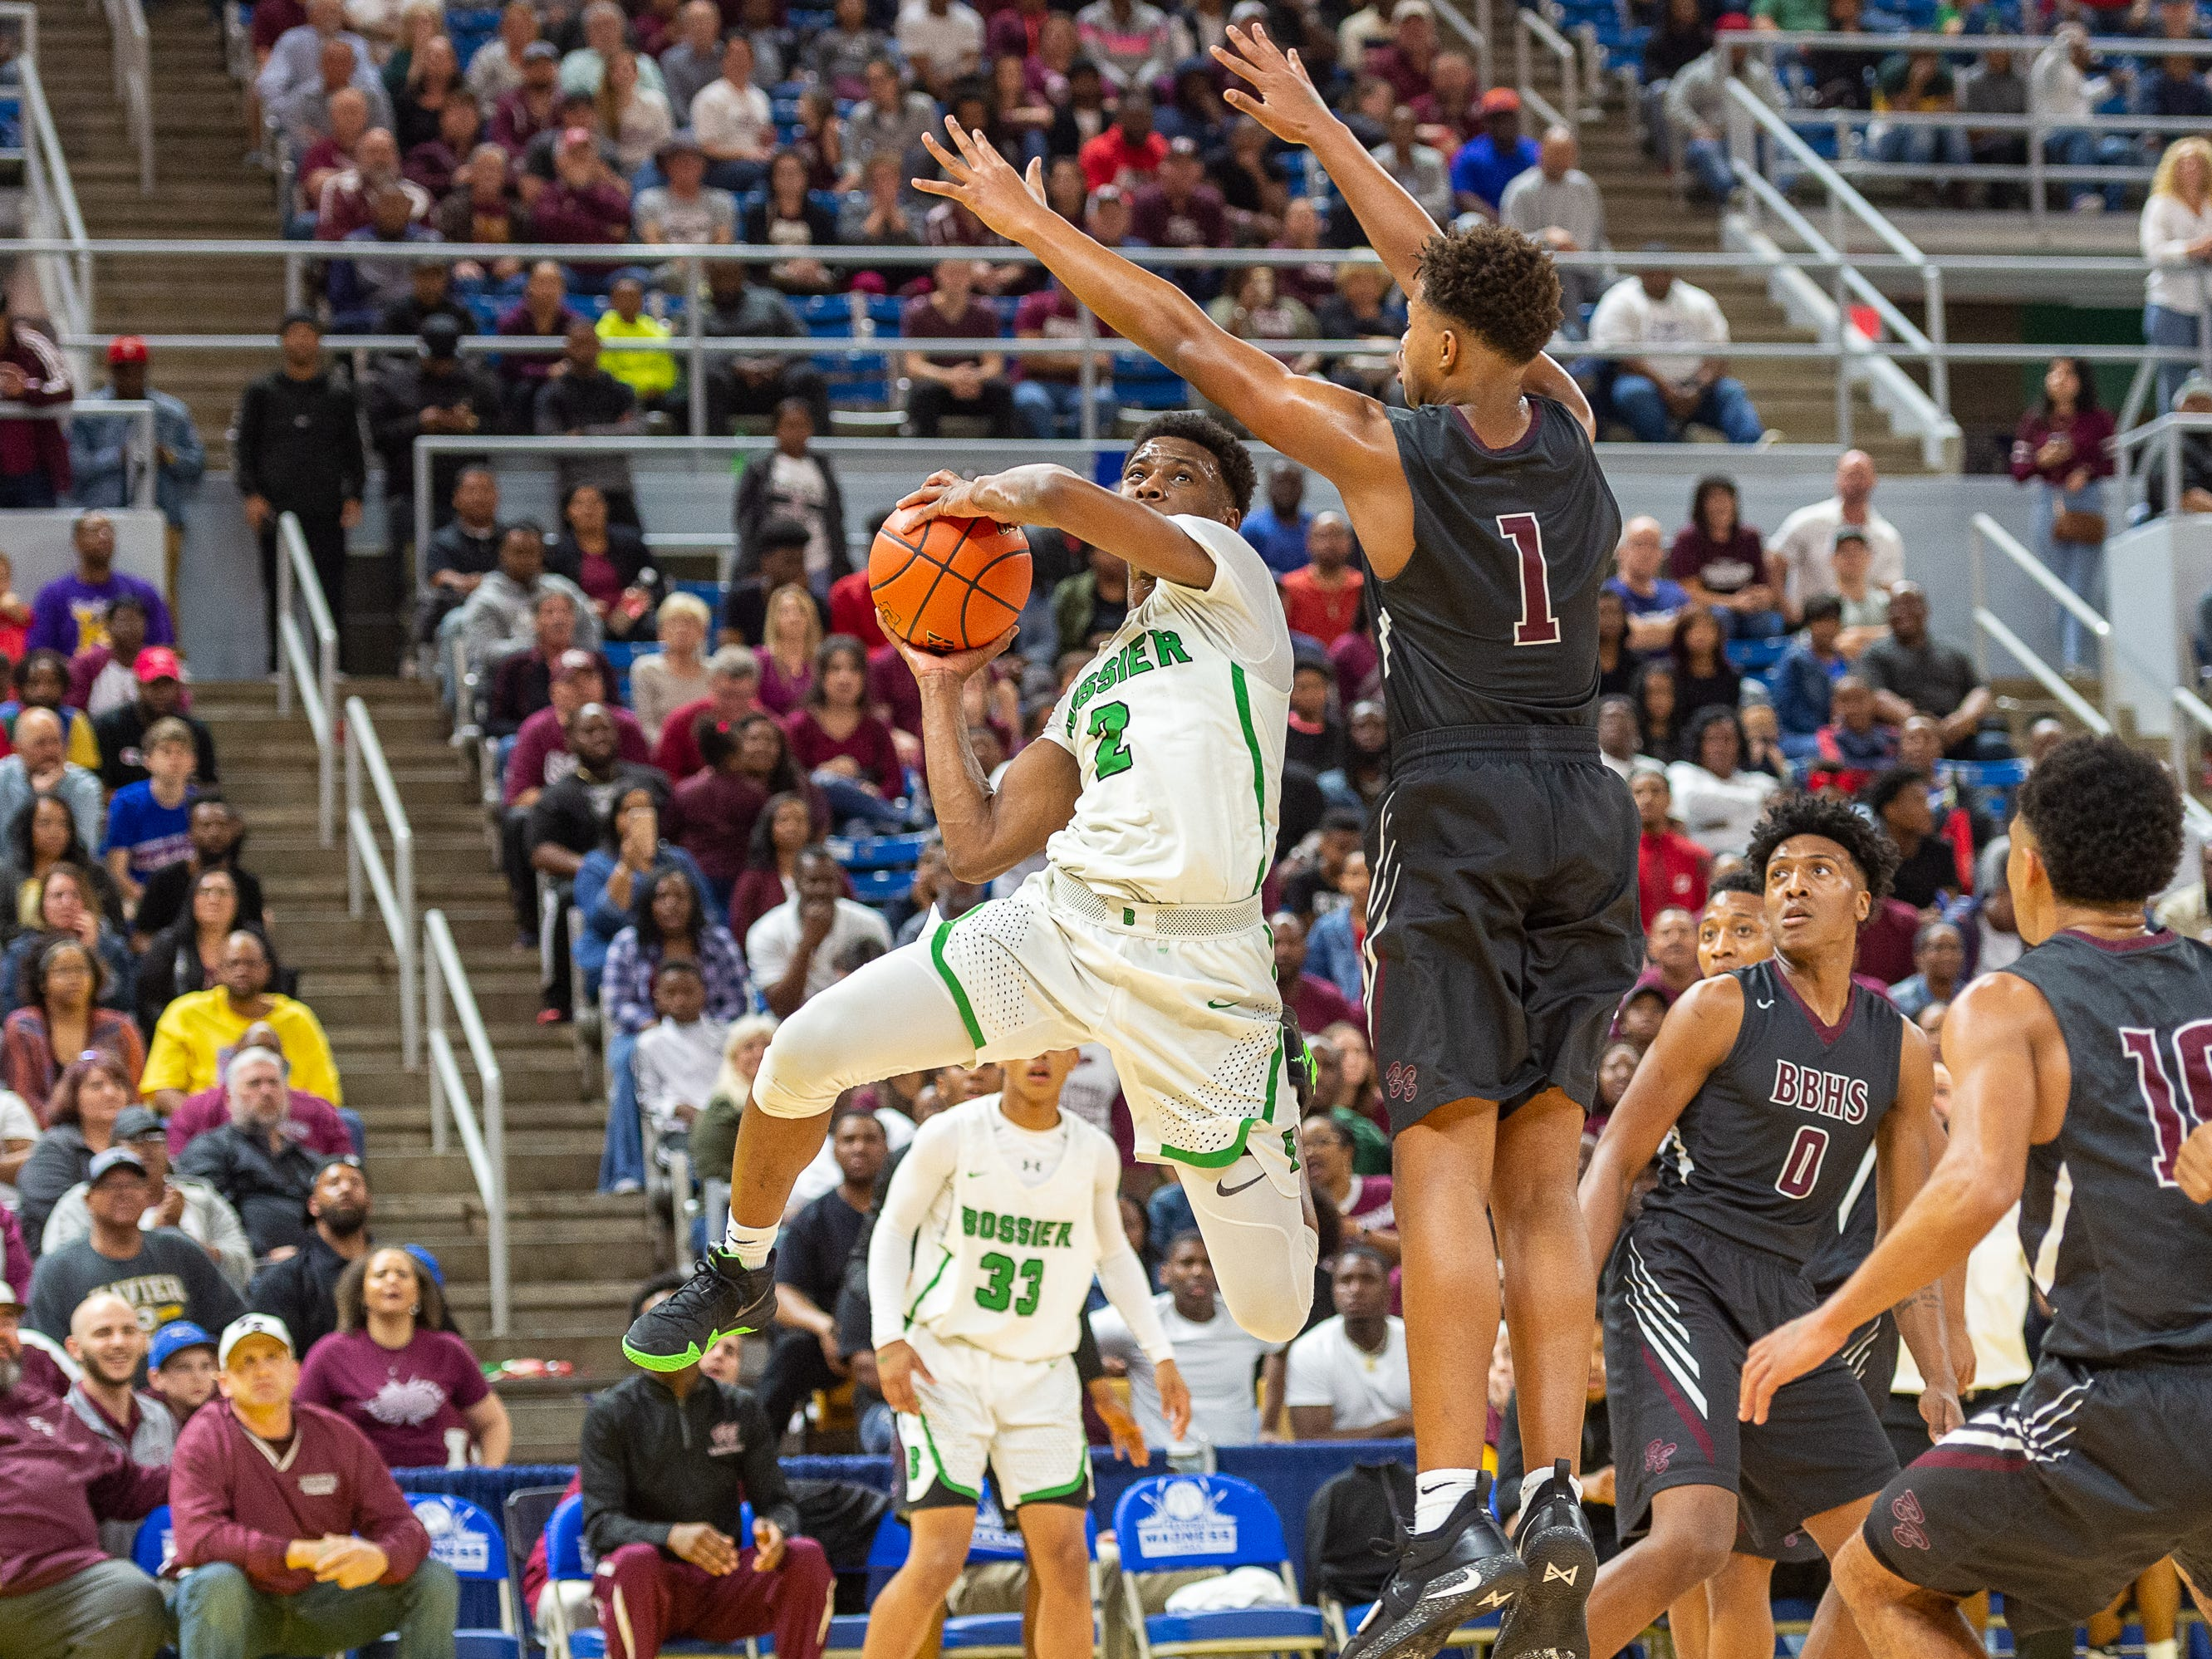 Xavien Beasley takes a shot as Breaux Bridge takes on Bossier in the Allstate Sugar Bowl/LHSAA Boys' Marsh Madness State Championship. Friday, March 8, 2019.